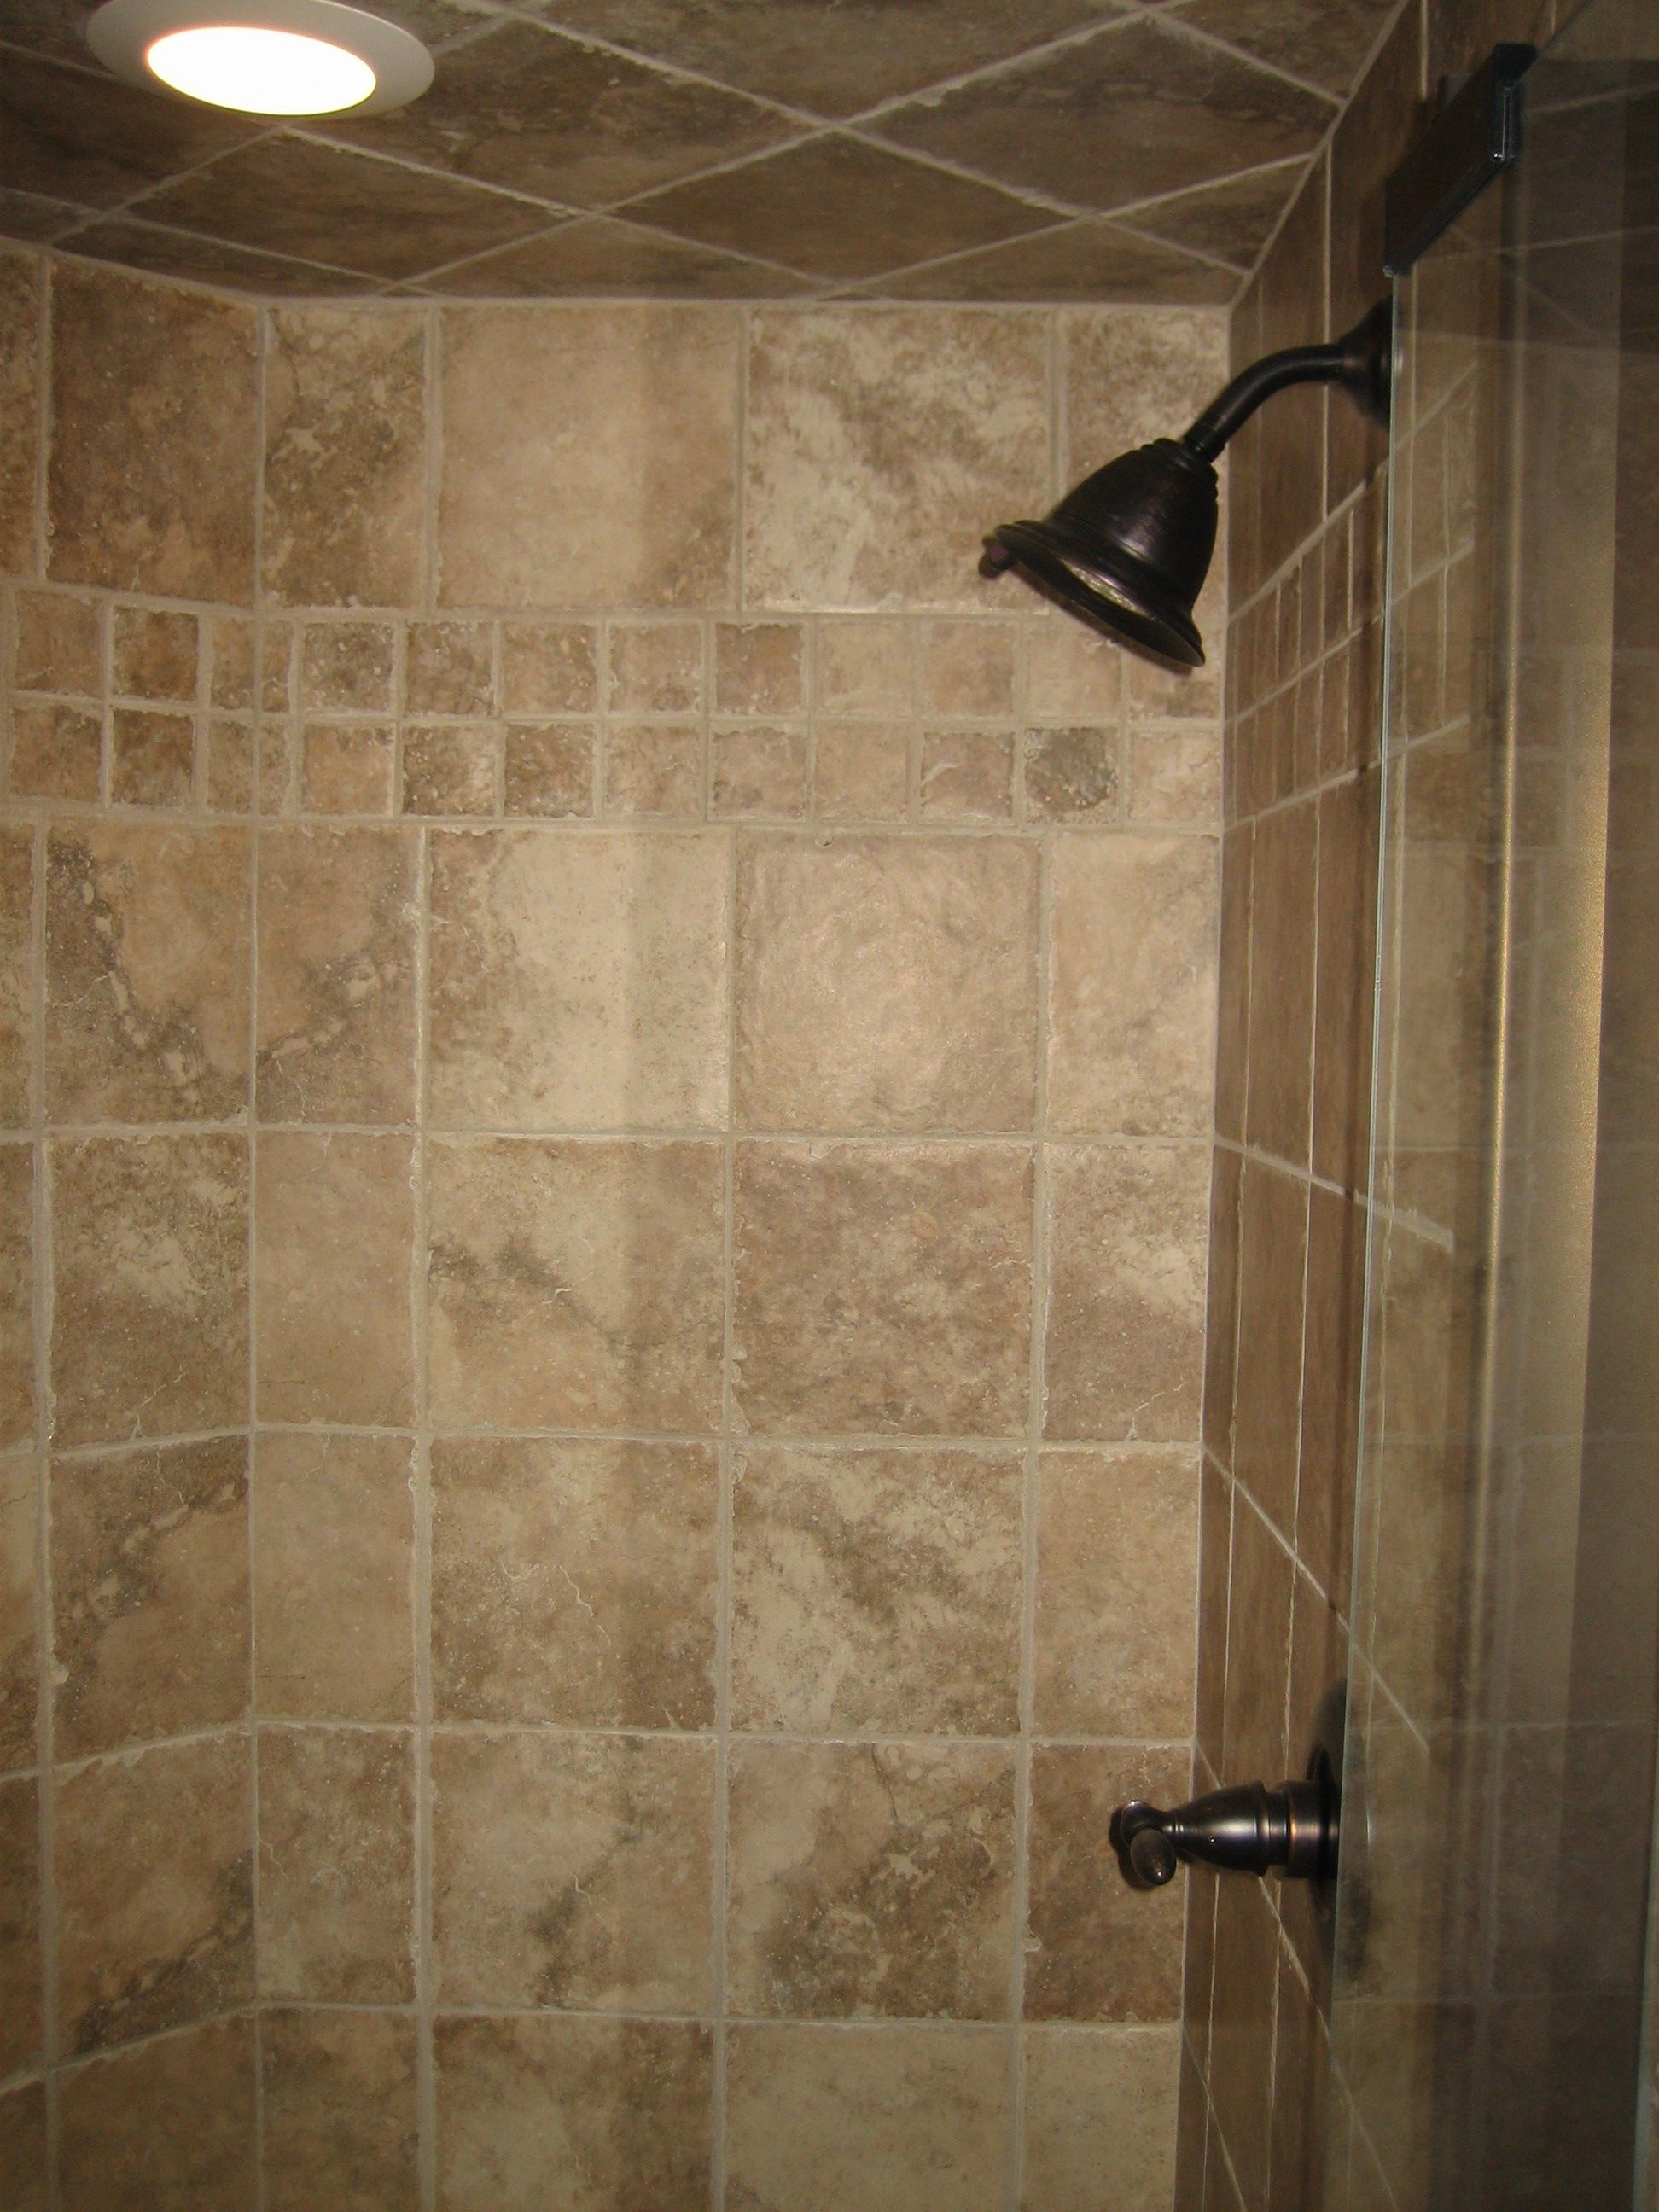 30 Great Pictures And Ideas Of Neutral Bathroom Tile: Shower With Band Insert-Ceiling Tile 2-2008